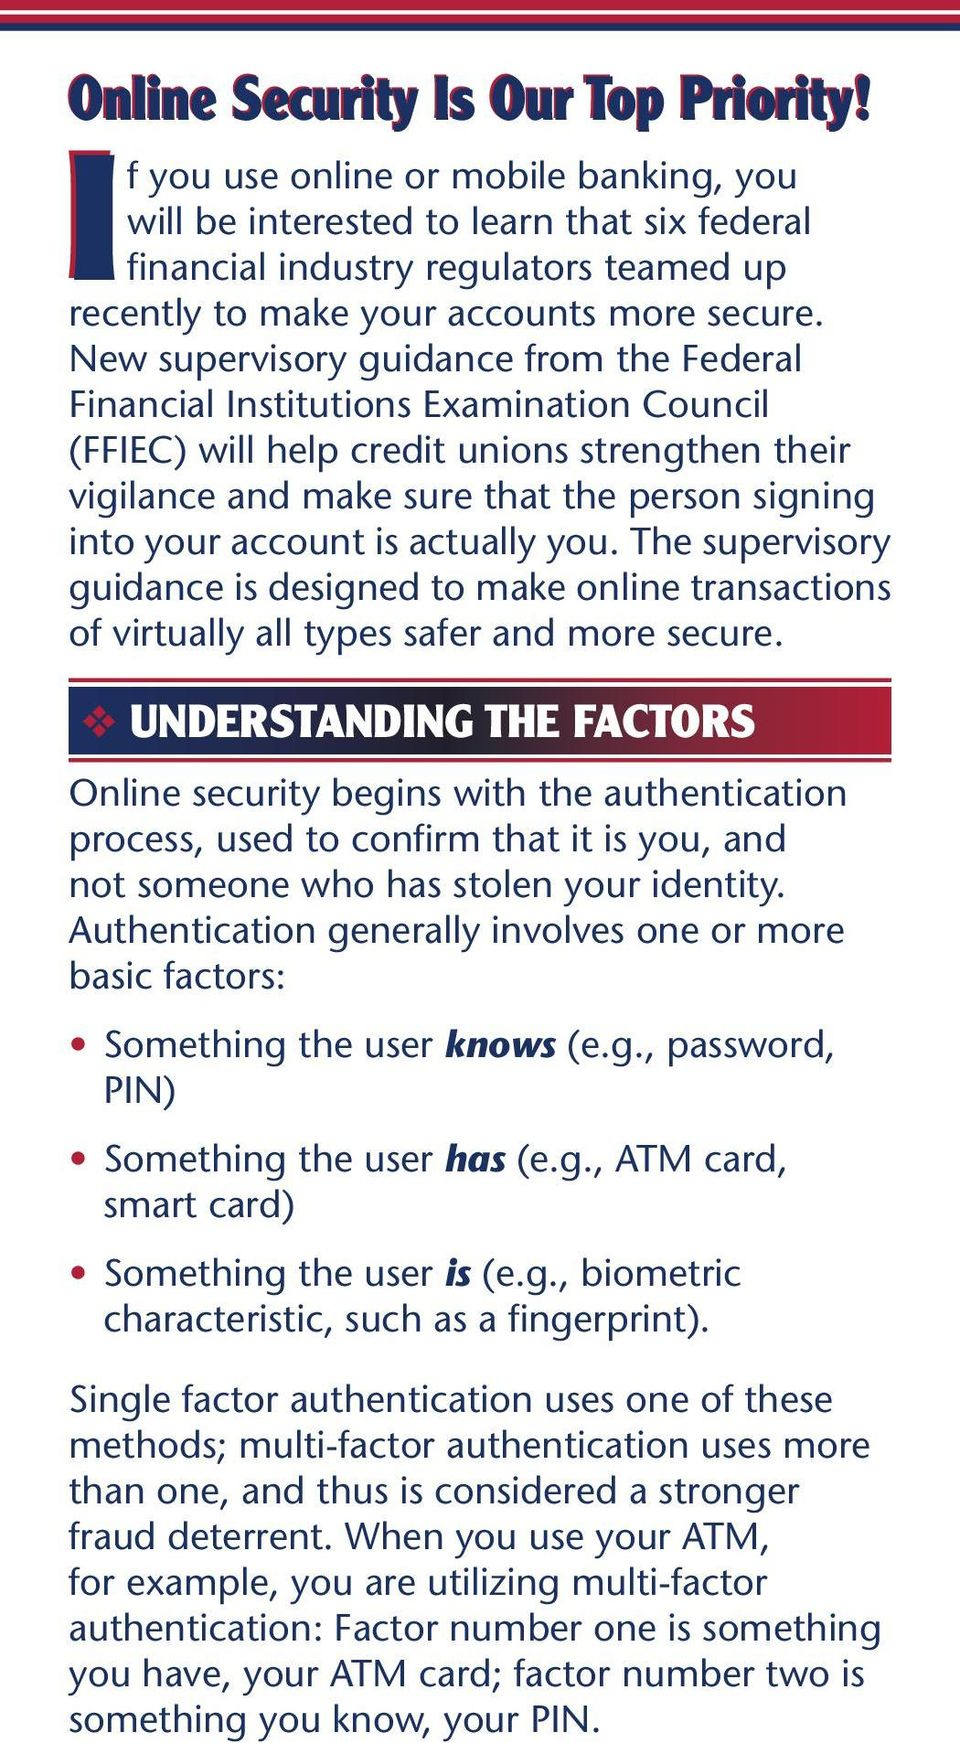 New supervisory guidance from the Federal Financial Institutions Examination Council (FFIEC) will help credit unions strengthen their vigilance and make sure that the person signing into your account